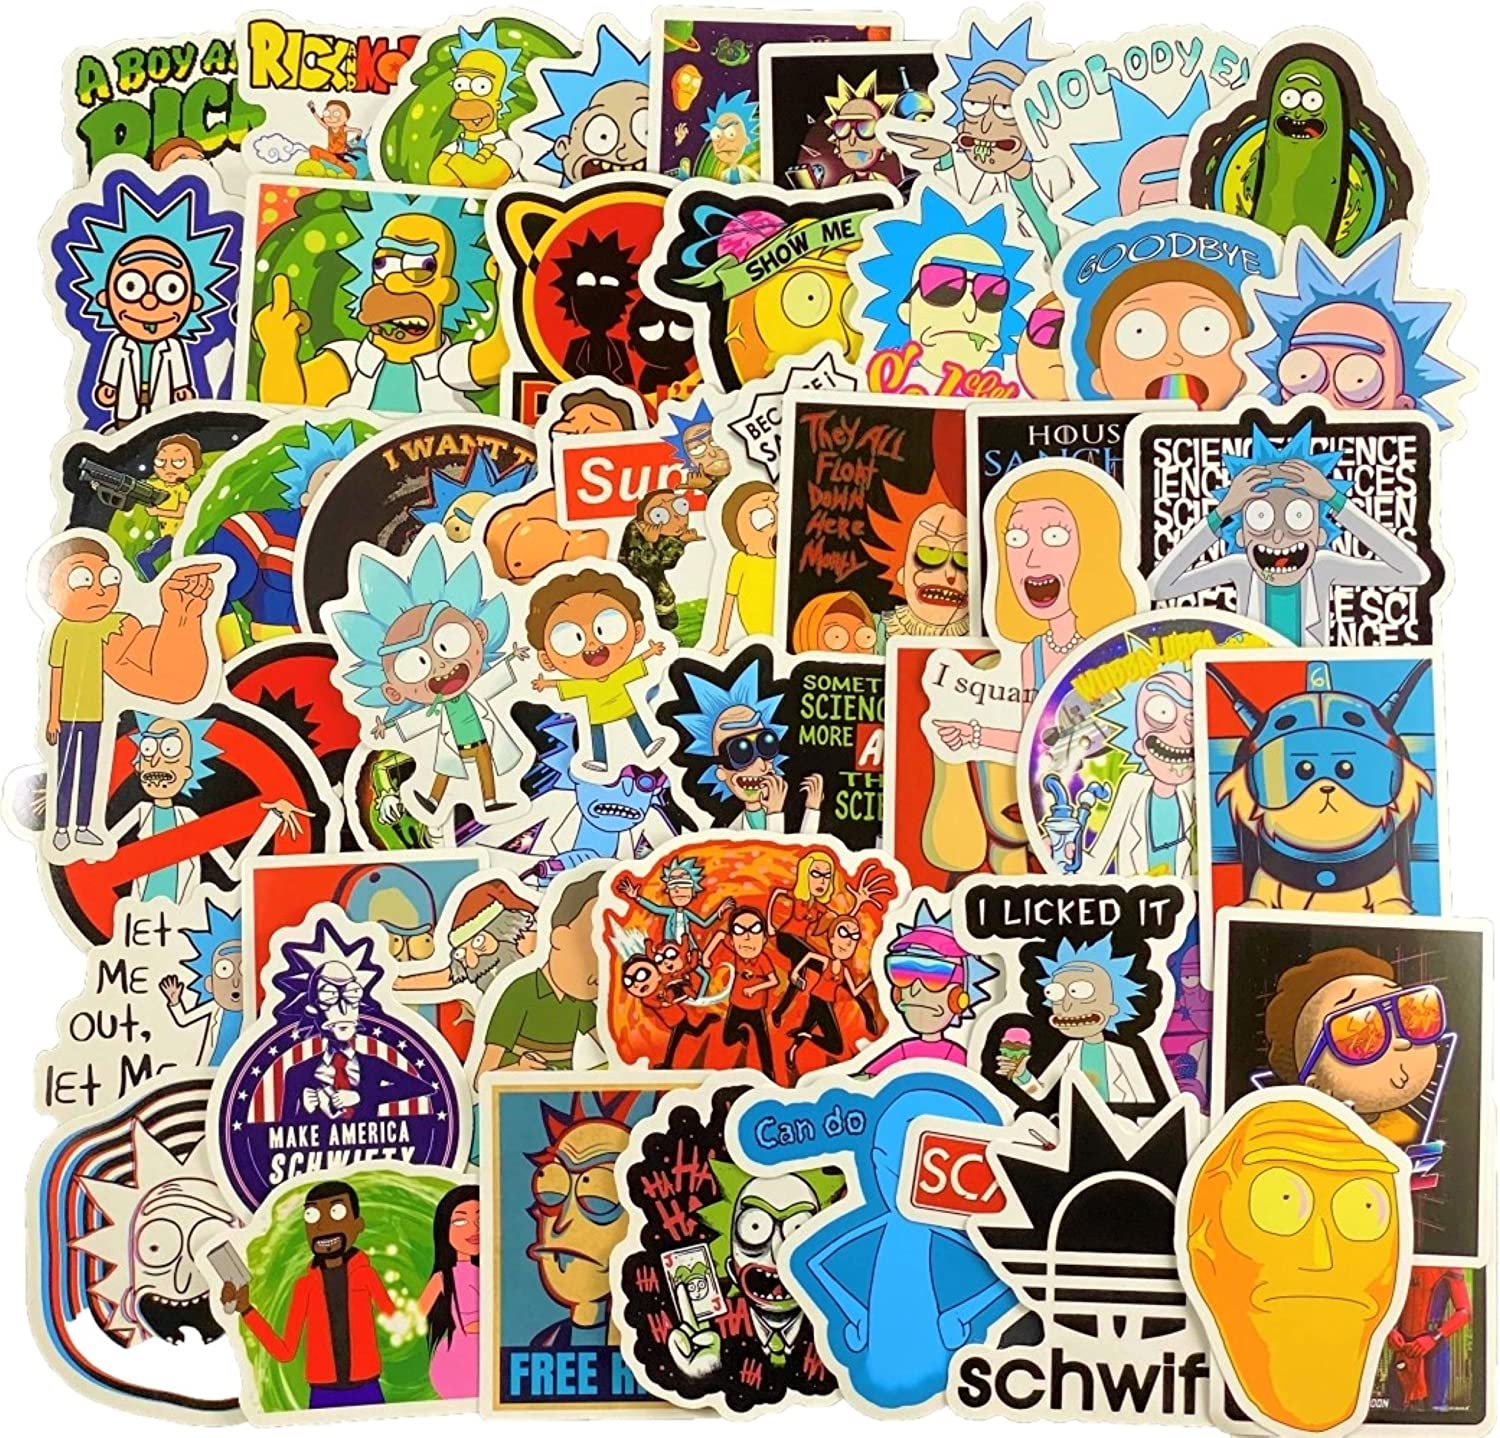 66 Pcs Rick and Morty Stickers Waterproof Vinyl Decal Decoration for Water Bottles Laptop Hydro Flask hydroflask Luggage Cup Mobile Phone Skateboard Decals, Sticker Bomb Bumper Stickers